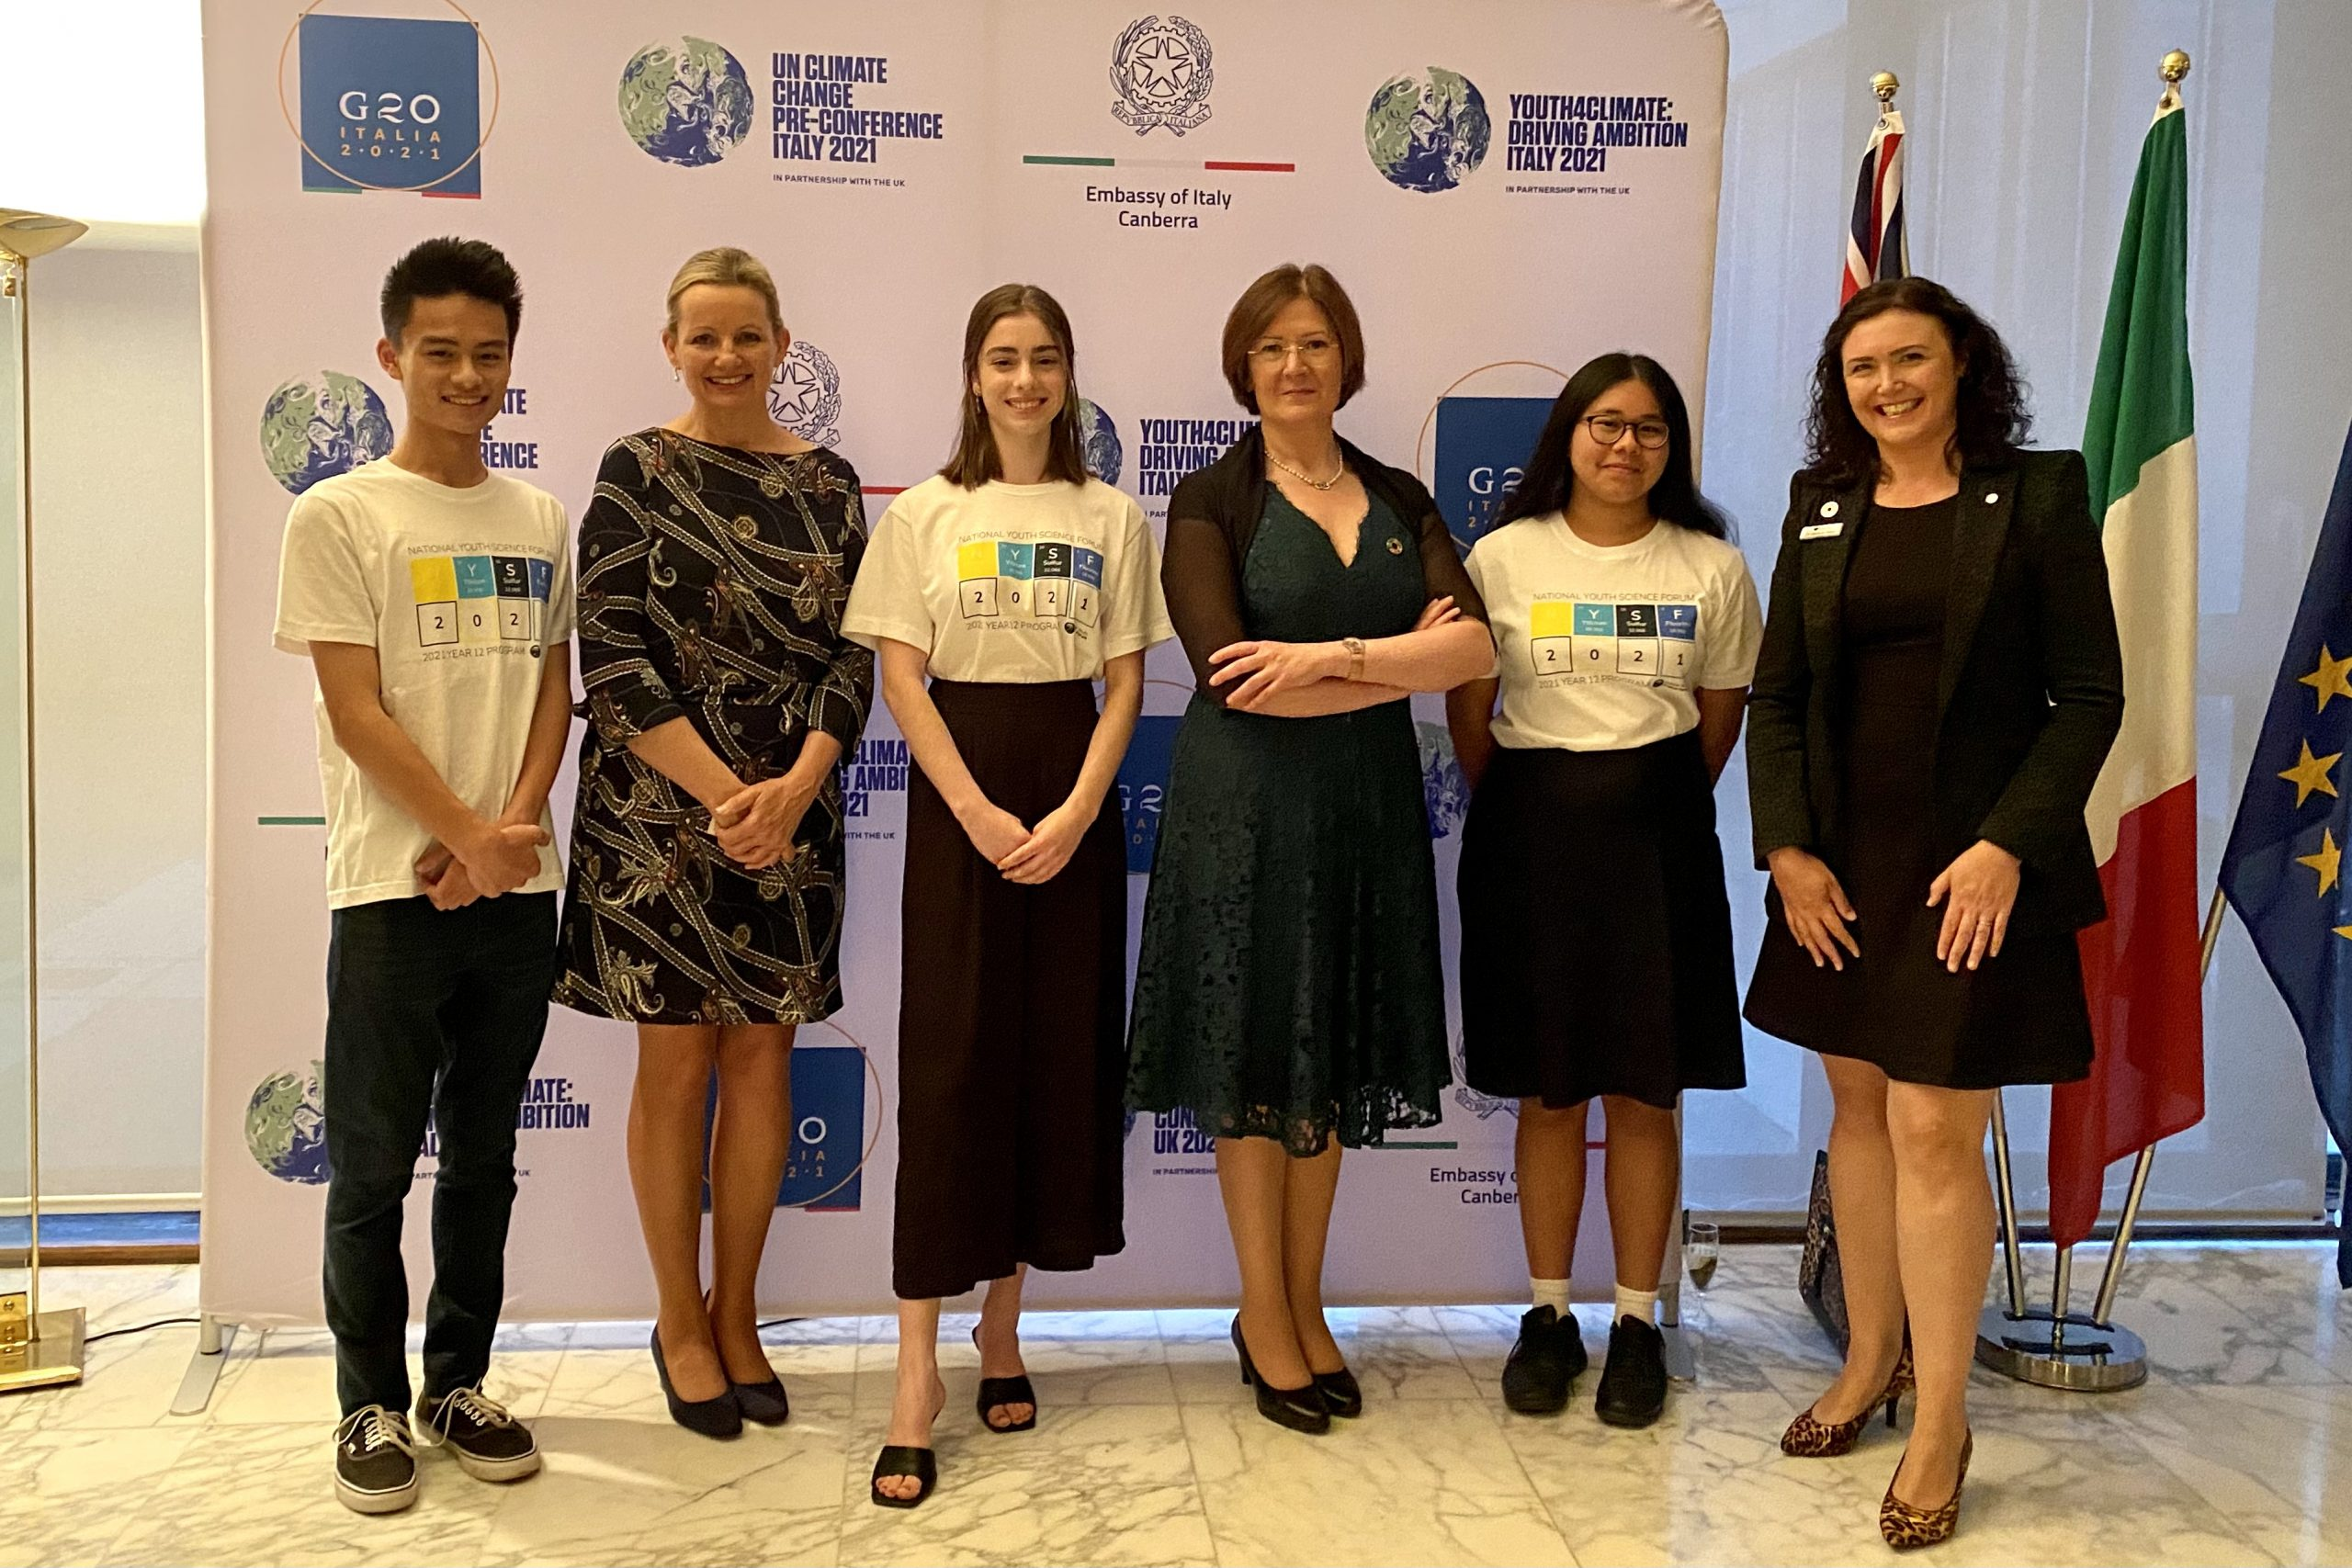 NYSF Alumni on the International Stage - content image